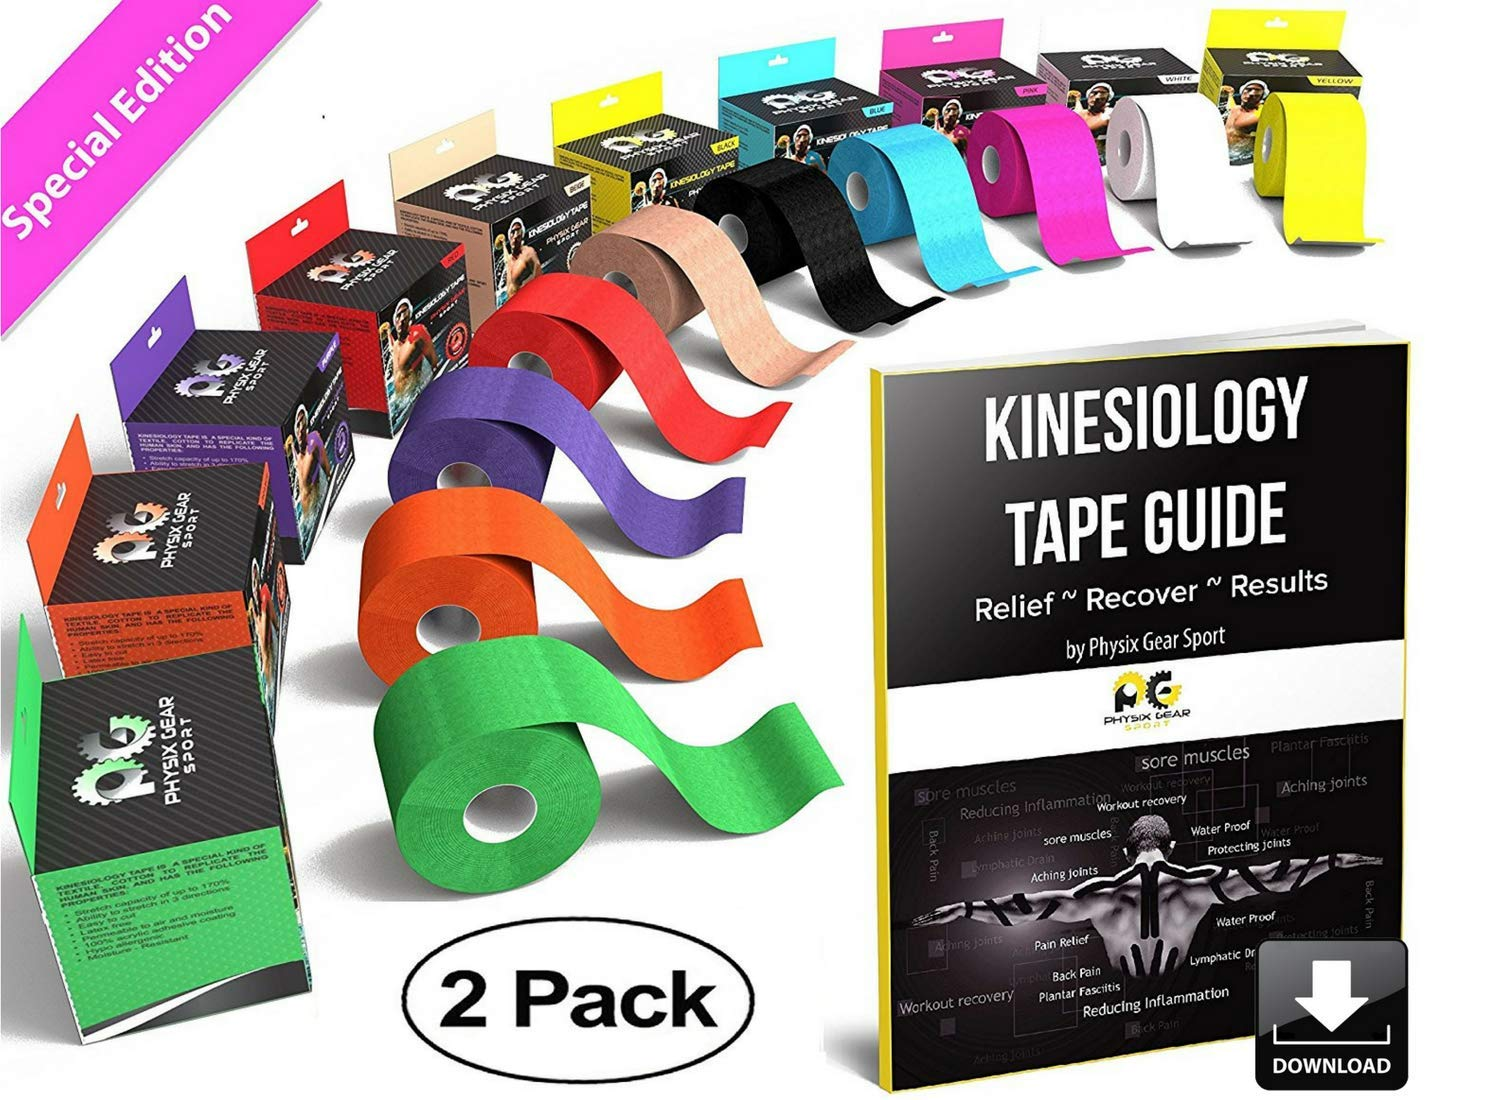 Physix Gear Sport Kinesiology Tape - Free Illustrated E-Guide - 16ft Uncut Roll - Best Pain Relief Adhesive for Muscles, Shin Splints Knee & Shoulder - 24/7 Waterproof Therapeutic Aid (2PK PNK) by Physix Gear Sport (Image #1)